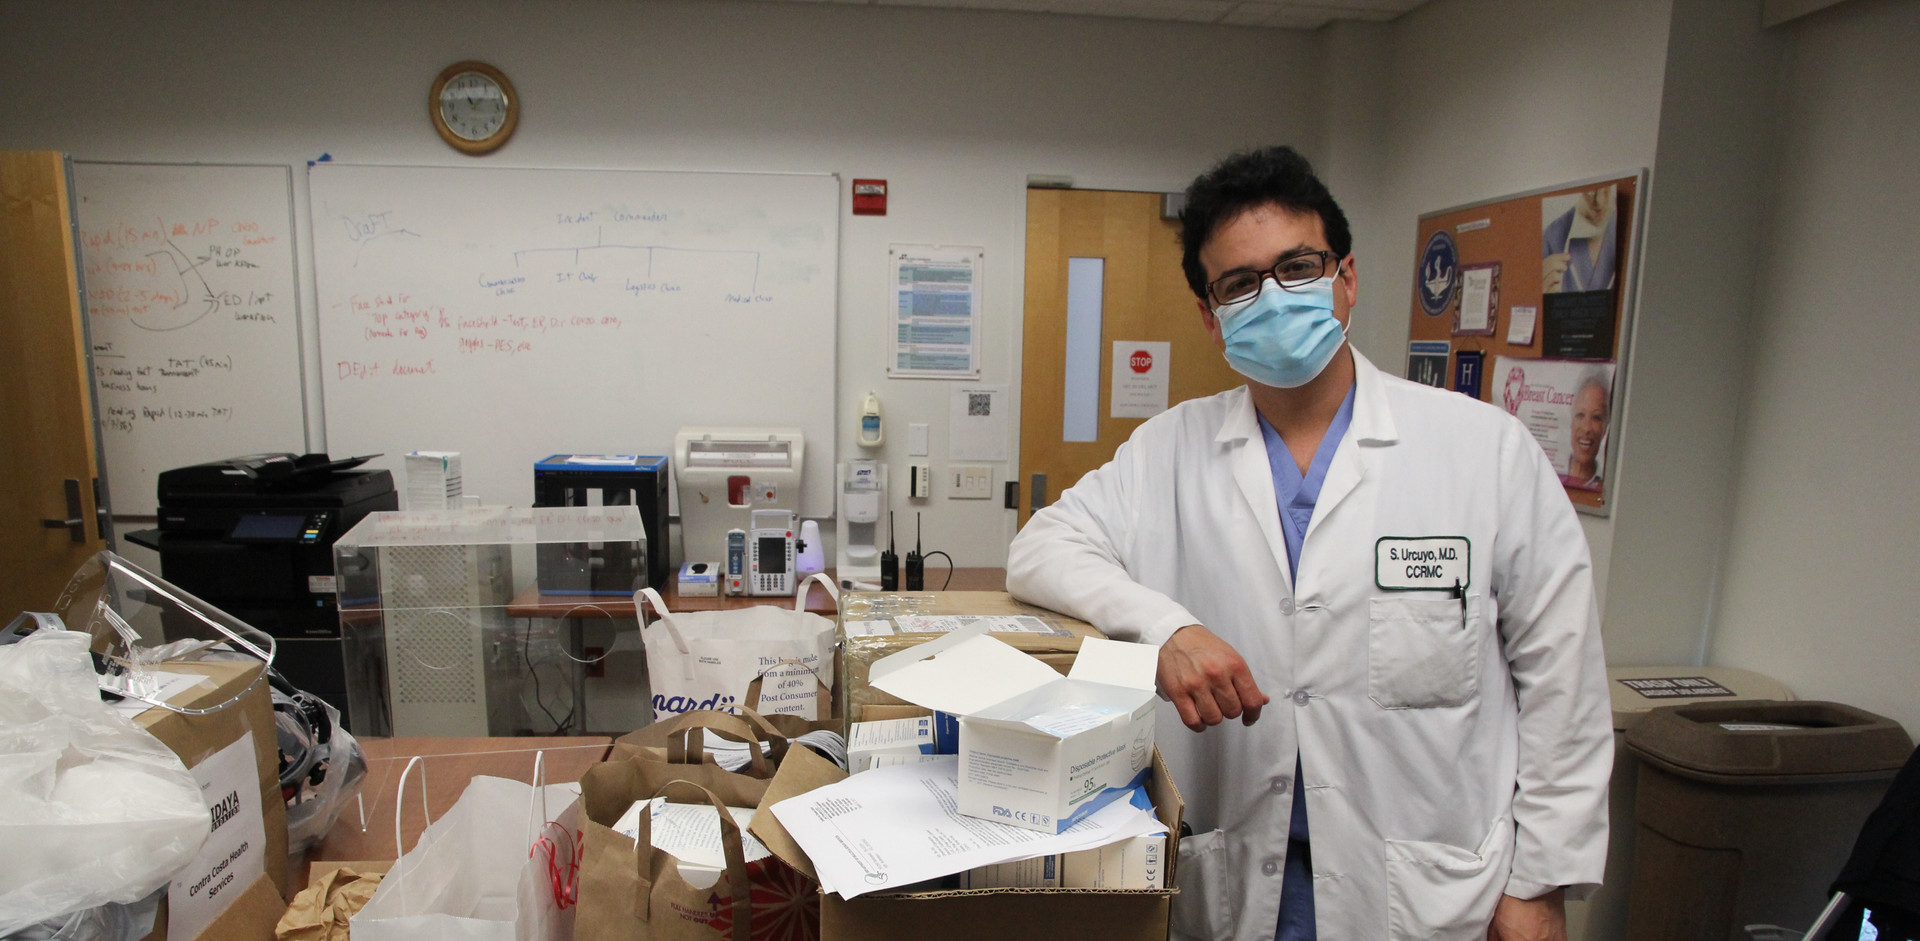 Dr. Sergio Urcuyo organizes personal protective equipment generously donated by the community for use by healthcare workers